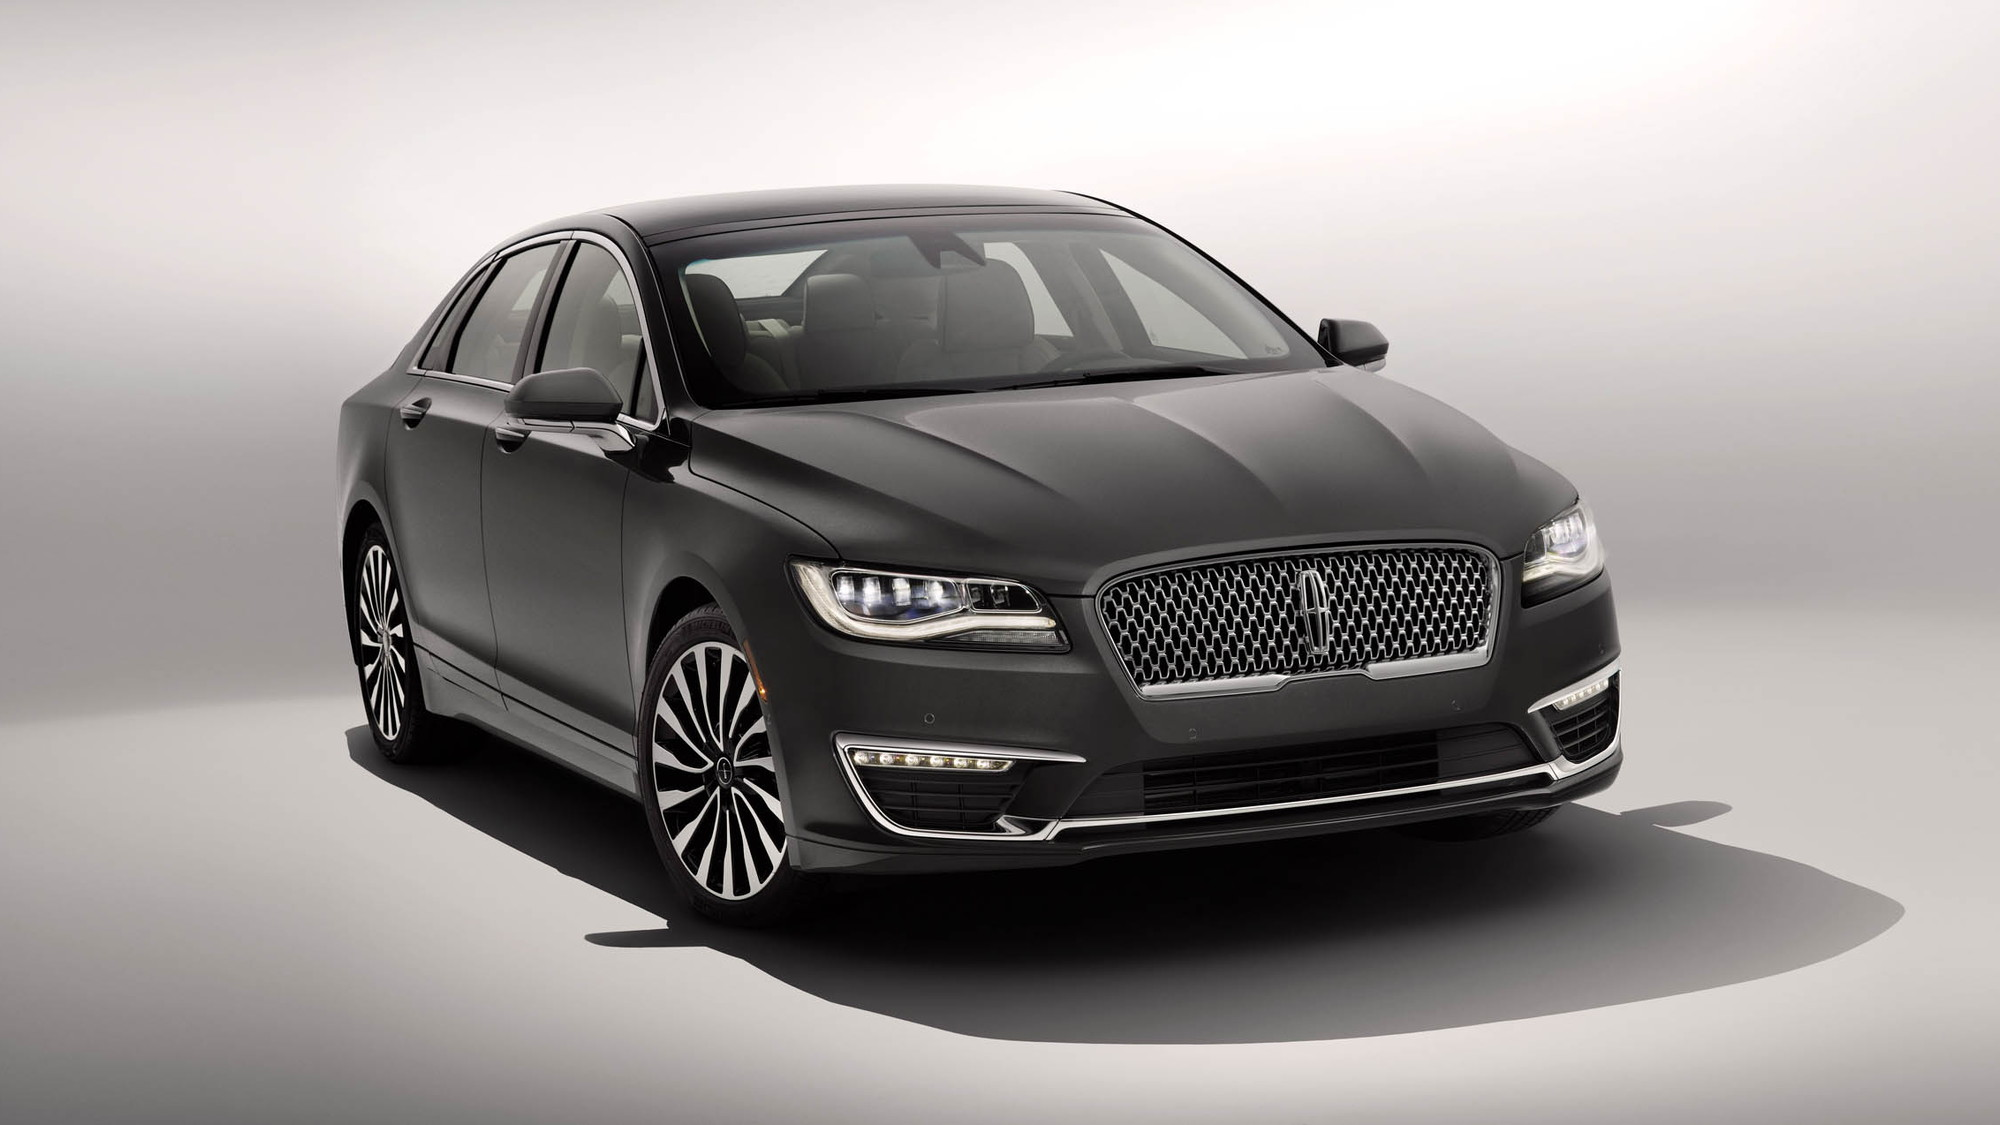 2020 Spy Shots Lincoln Mkz Sedan Ratings